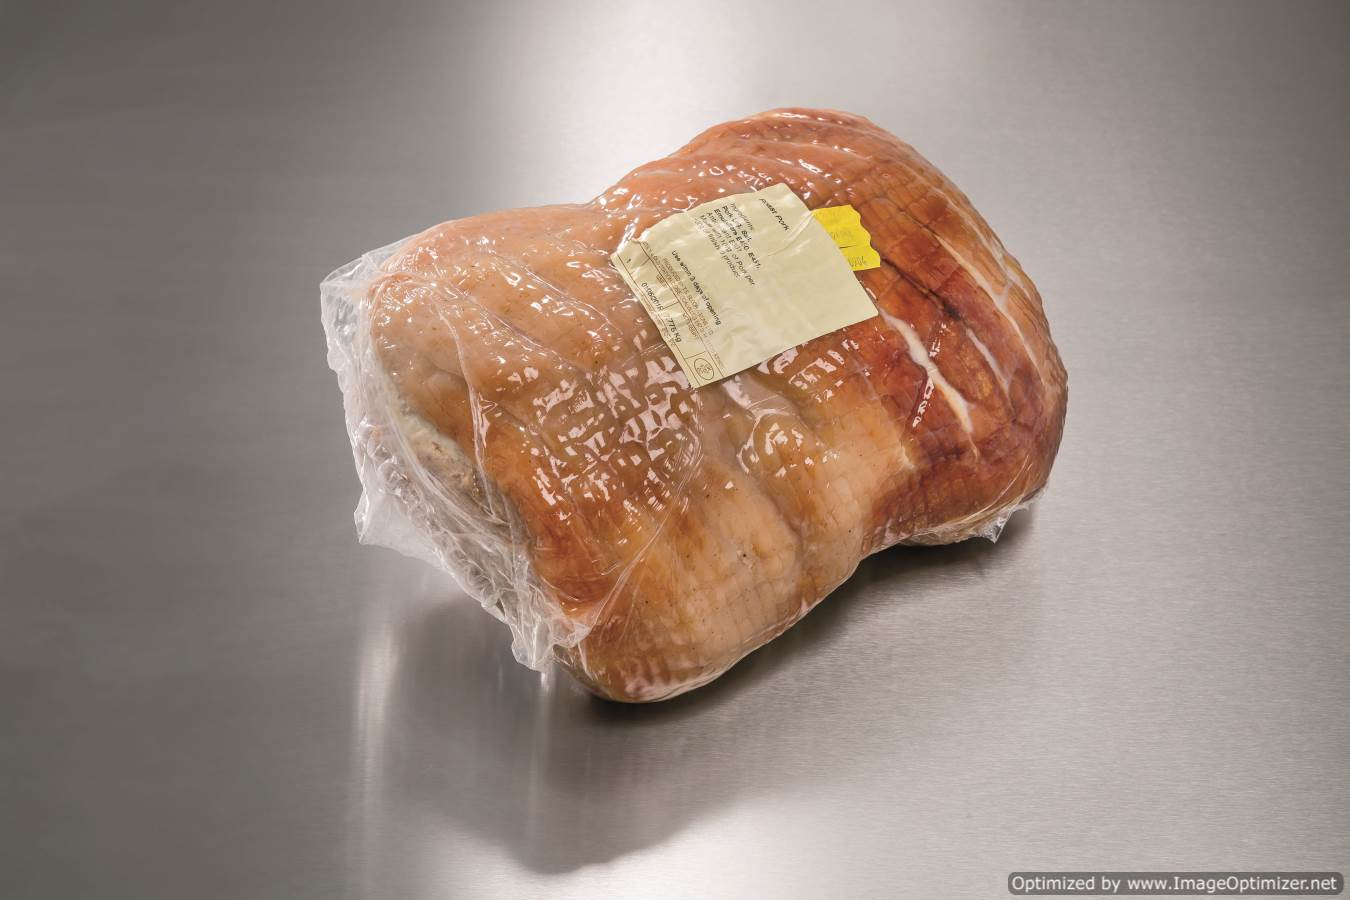 Image of Roast Pork